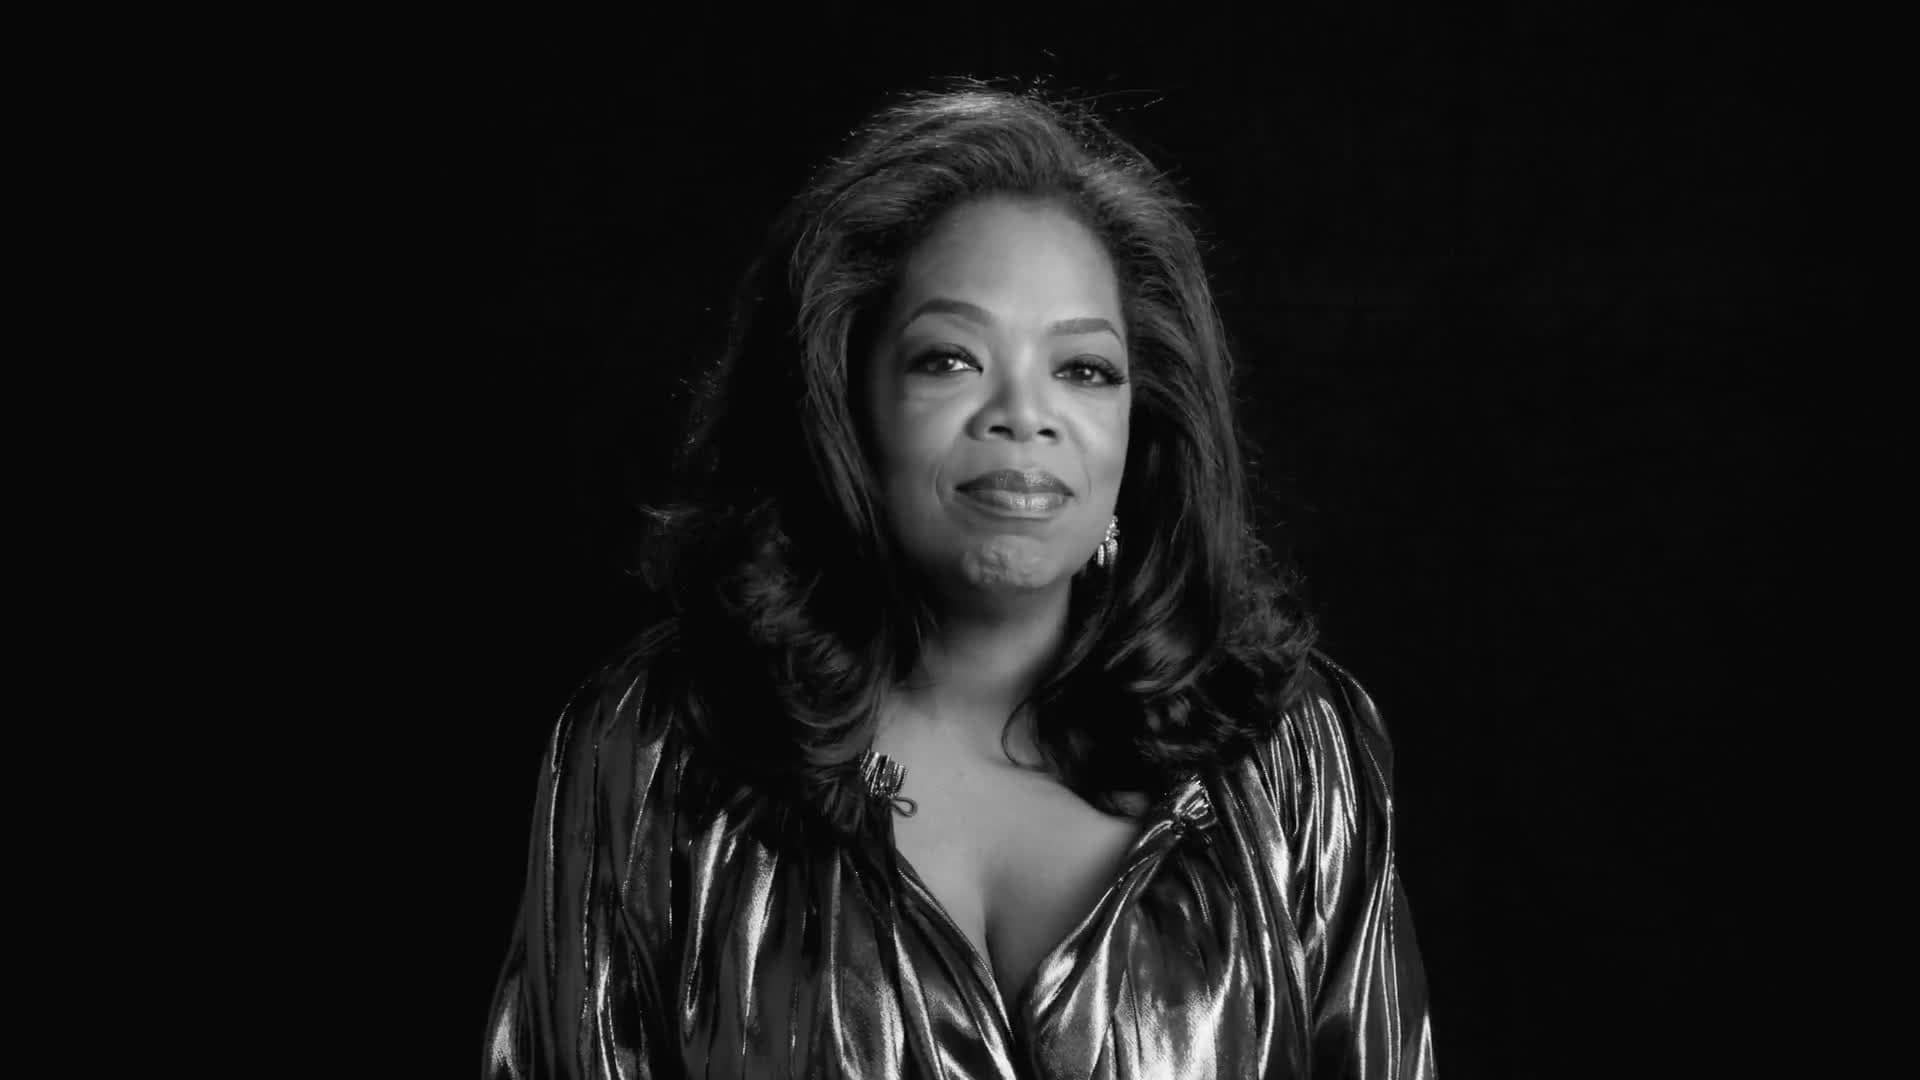 monochrome oprah winfrey wallpaper 70390